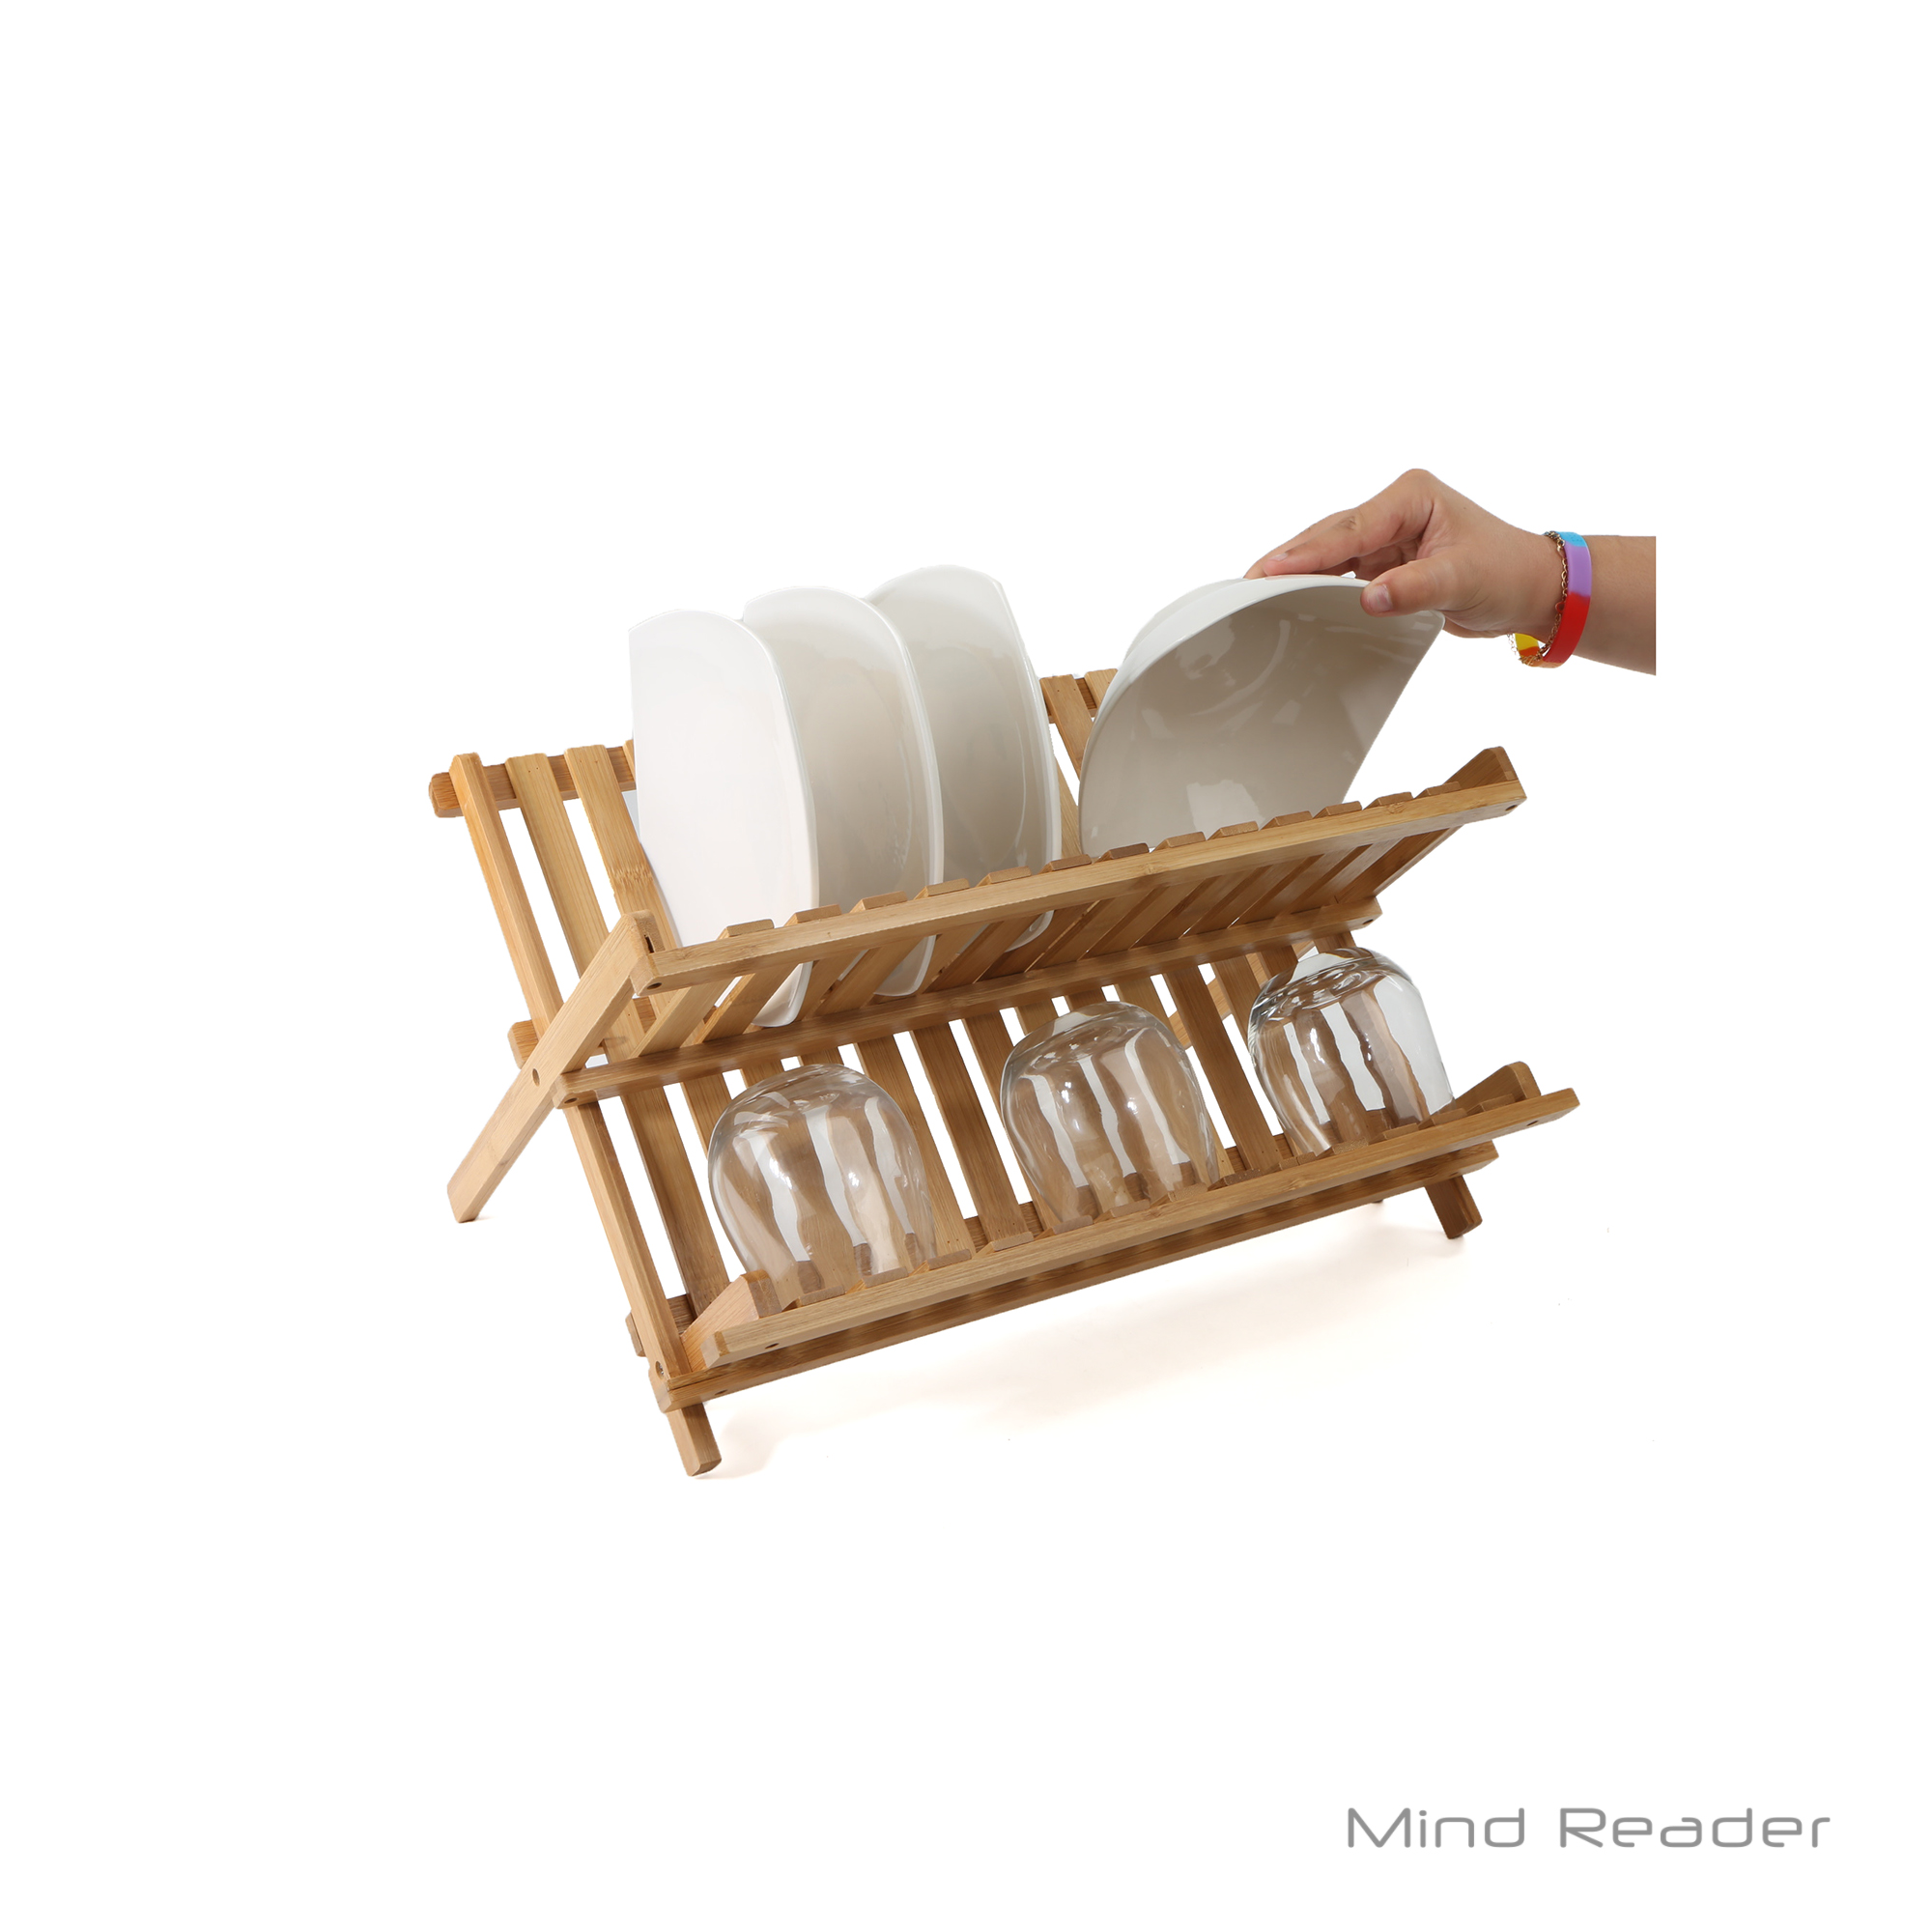 Mind Reader Wooden Dish Rack Plate Rack Collapsible Dish Drying Rack Bamboo Dish Drainer  sc 1 st  Walmart & Mind Reader Wooden Dish Rack Plate Rack Collapsible Dish Drying Rack ...